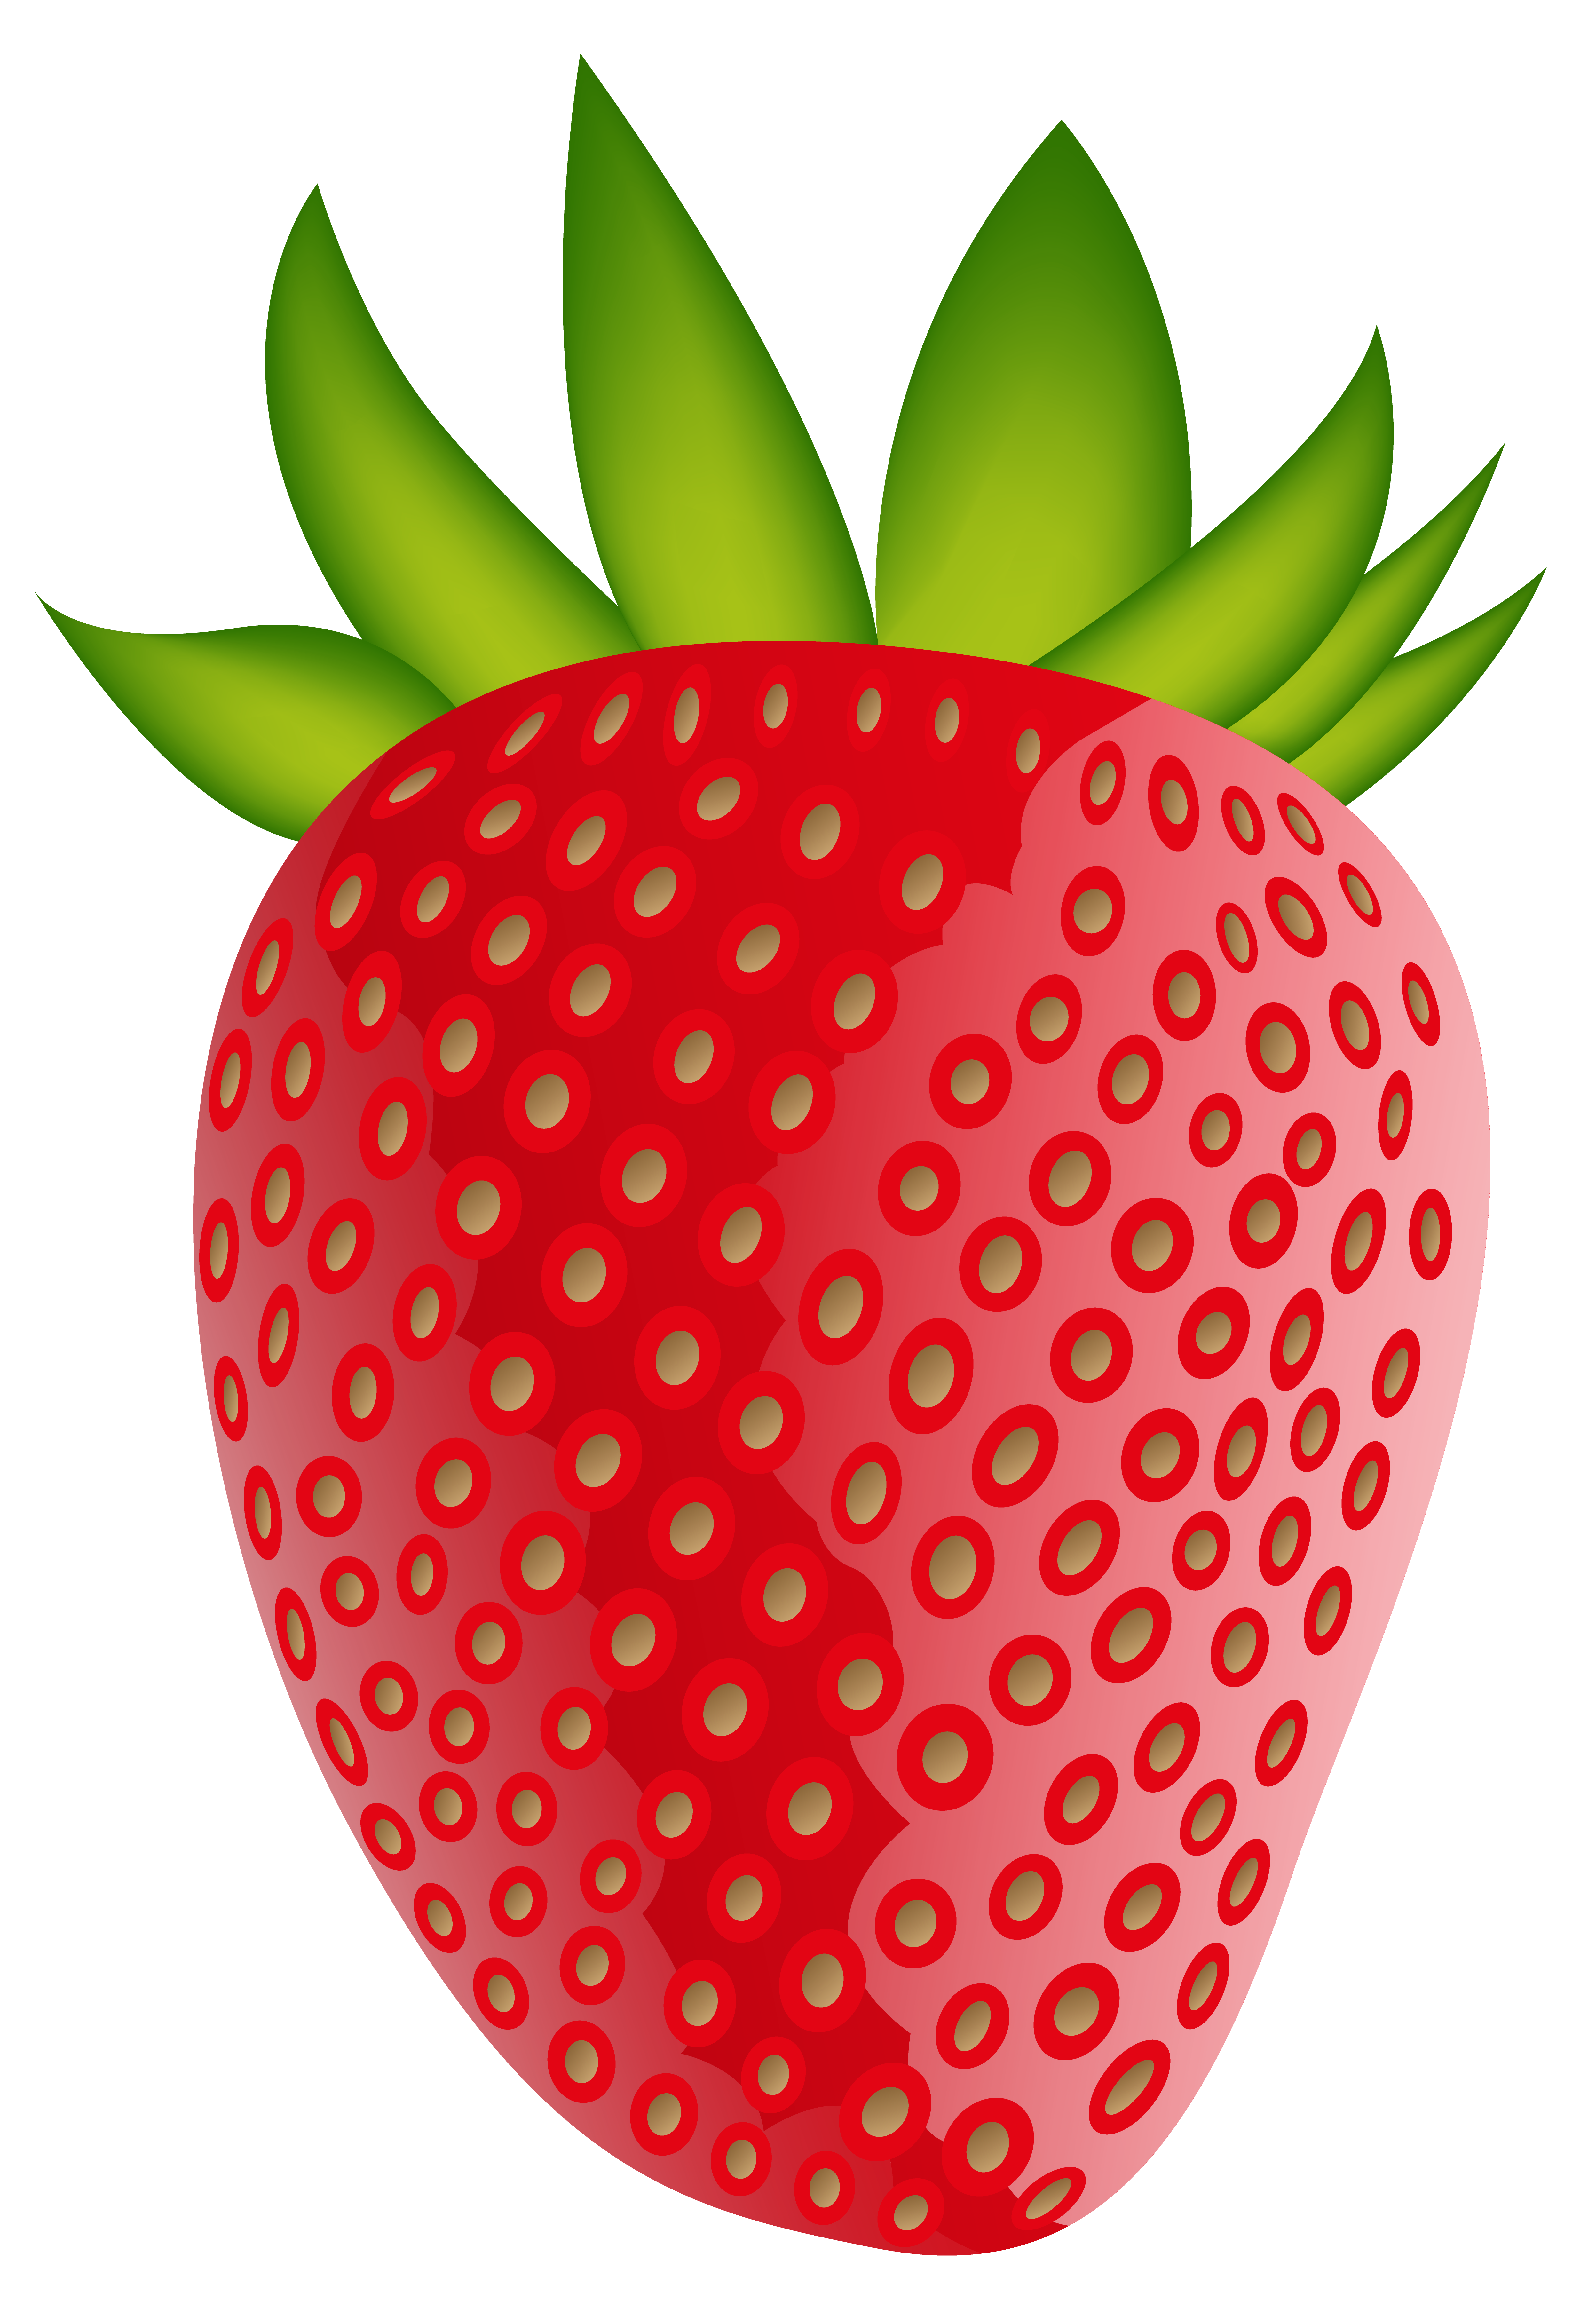 Strawberry png clip artt. Strawberries clipart clear background